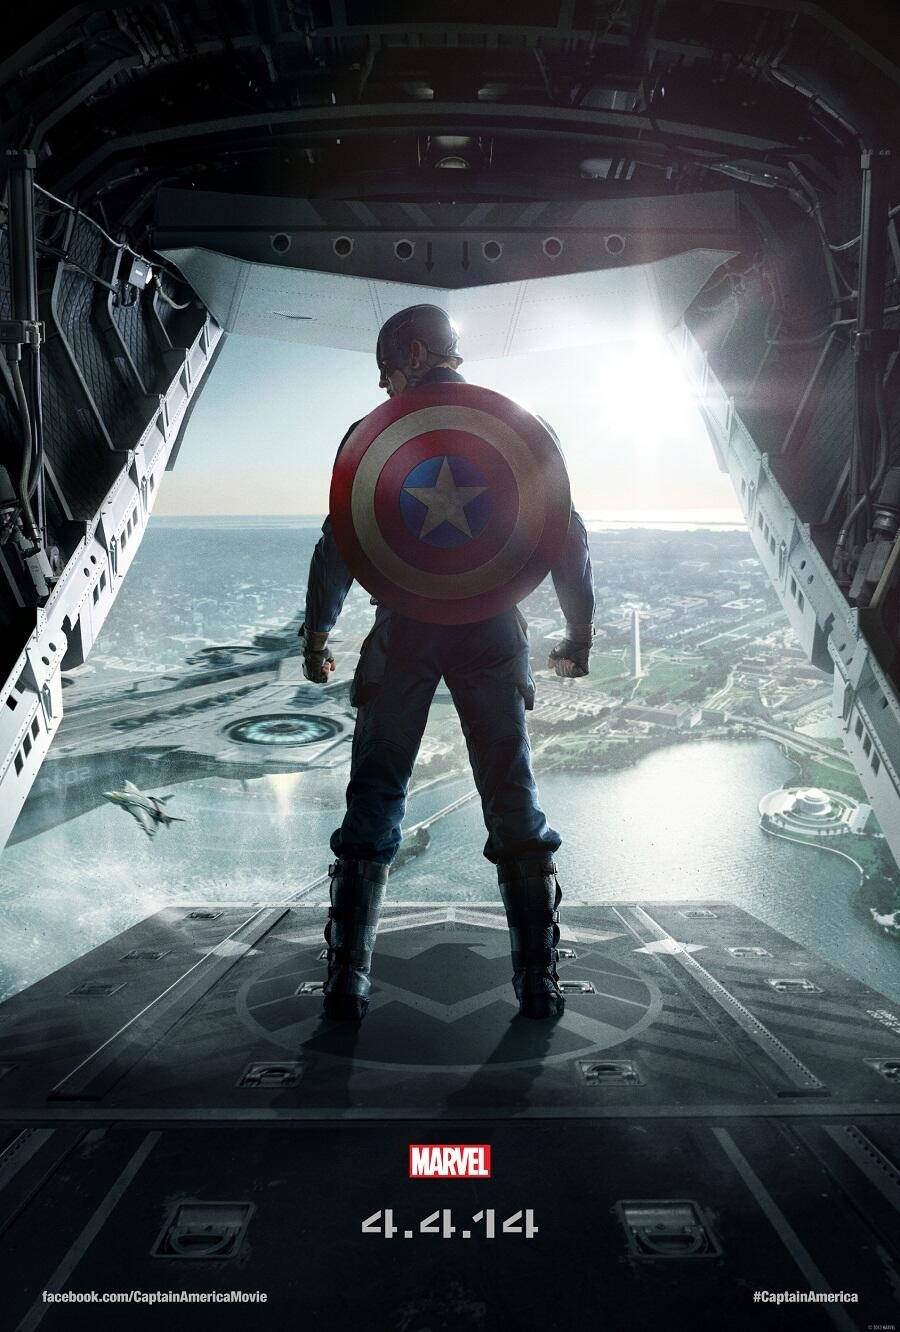 Captain America The Winter Soldier-Official Poster Banner PROMO POSTER-22OUTUBRO2013